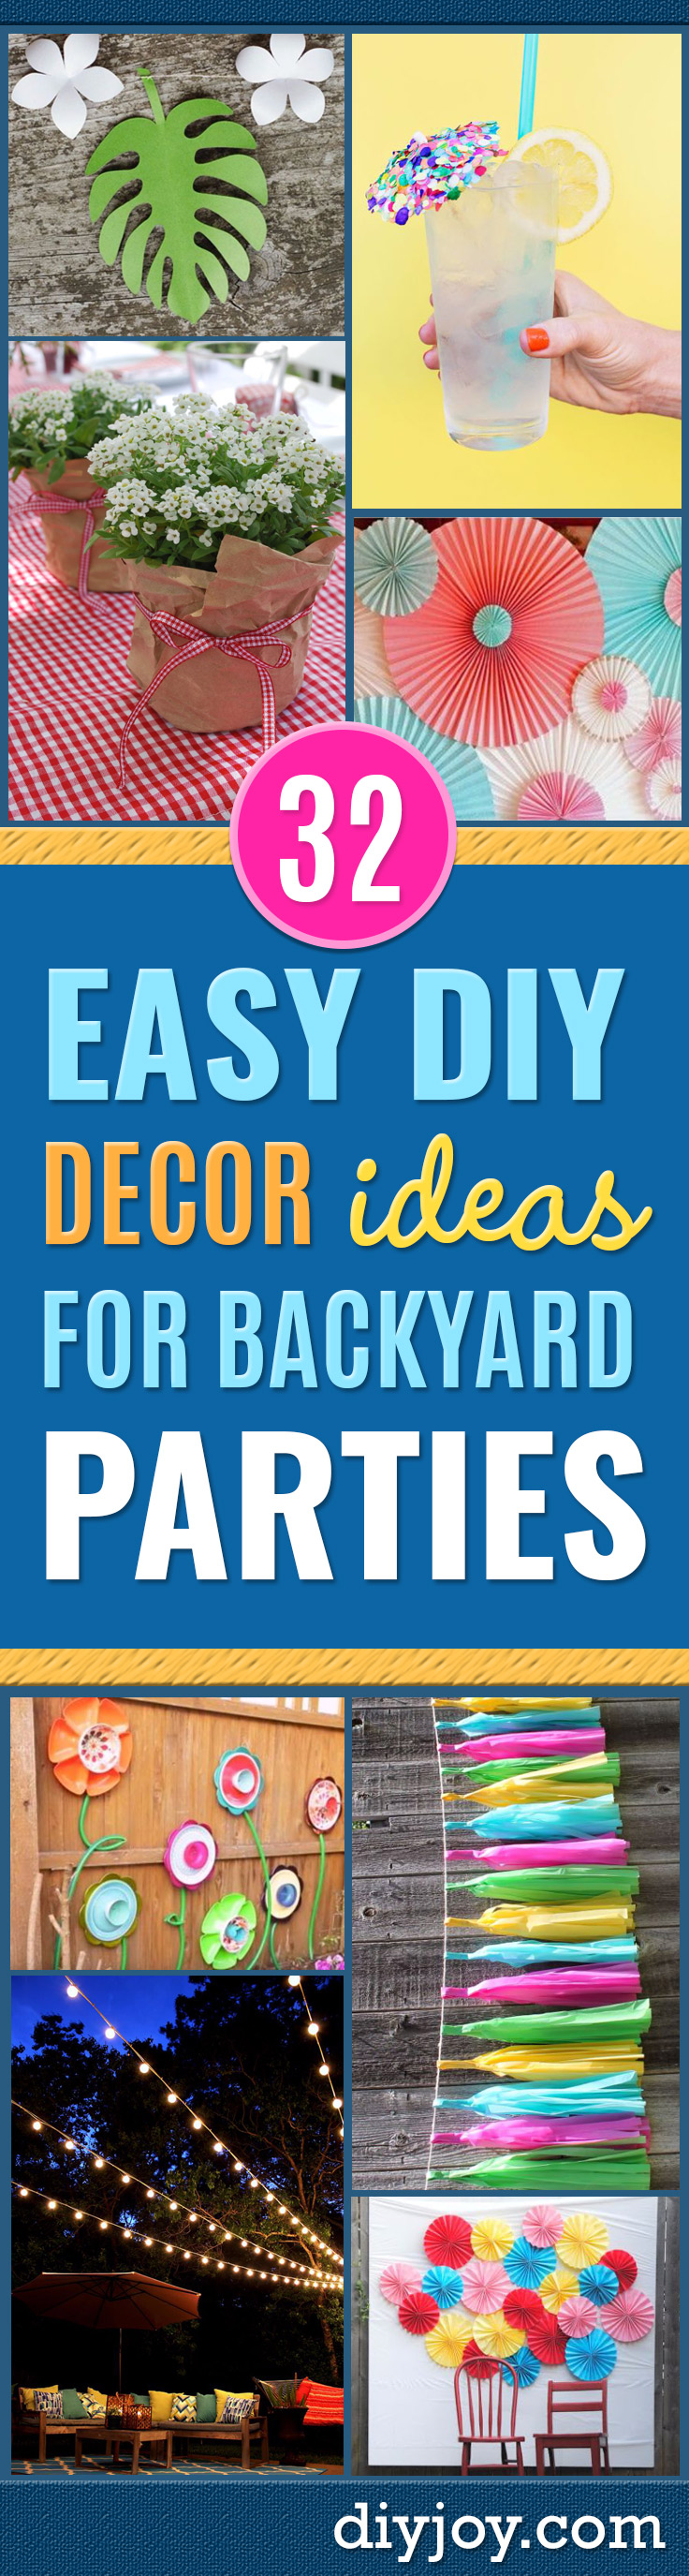 DIY Backyard Party Decor - Cool Ideas for Decorations for Parties - Easy and Cheap Crafts for Summer Barbecues and Family Get Togethers, Swimming and Pool Party Fun - Step by Step Tutorials For Banners, Table Decor, Serving Ideas and Mason Jar Crafts http://diyjoy.com/diy-backyard-party-decor